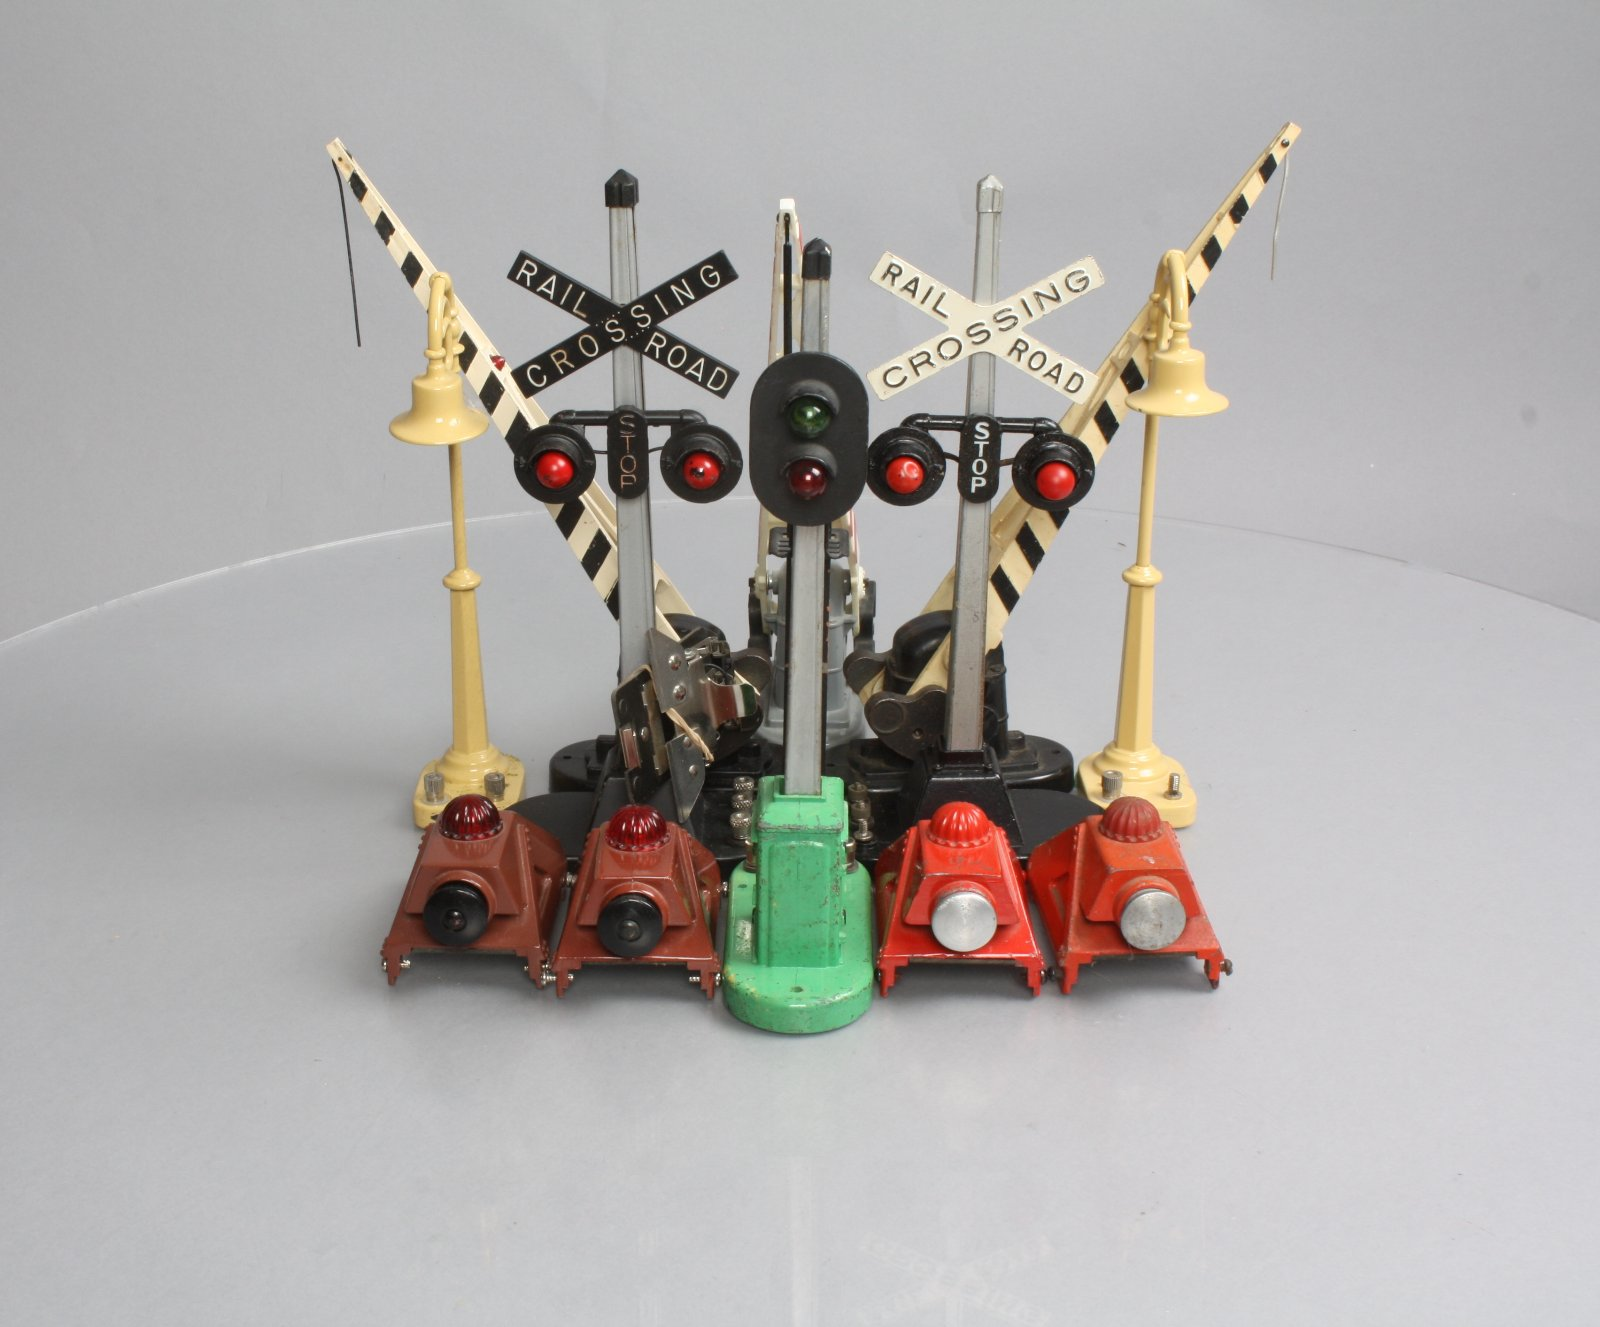 Buy Lionel Modern & PW Railroad Signal, Bumpers, Lamp Posts